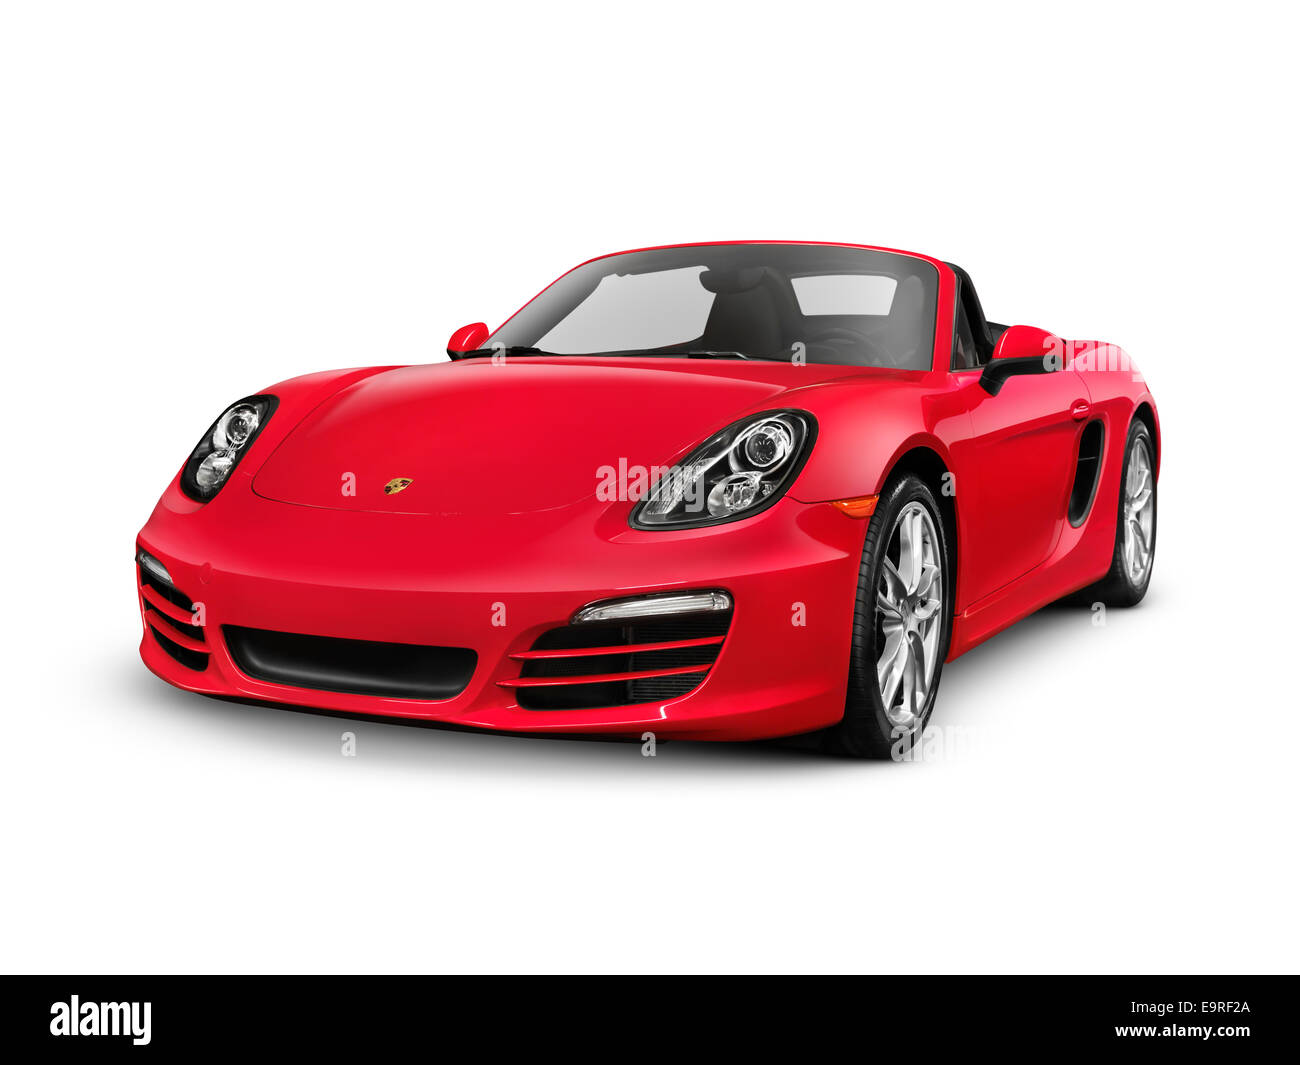 Red 2014 Porsche Boxster S Convertible Luxury Sports Car